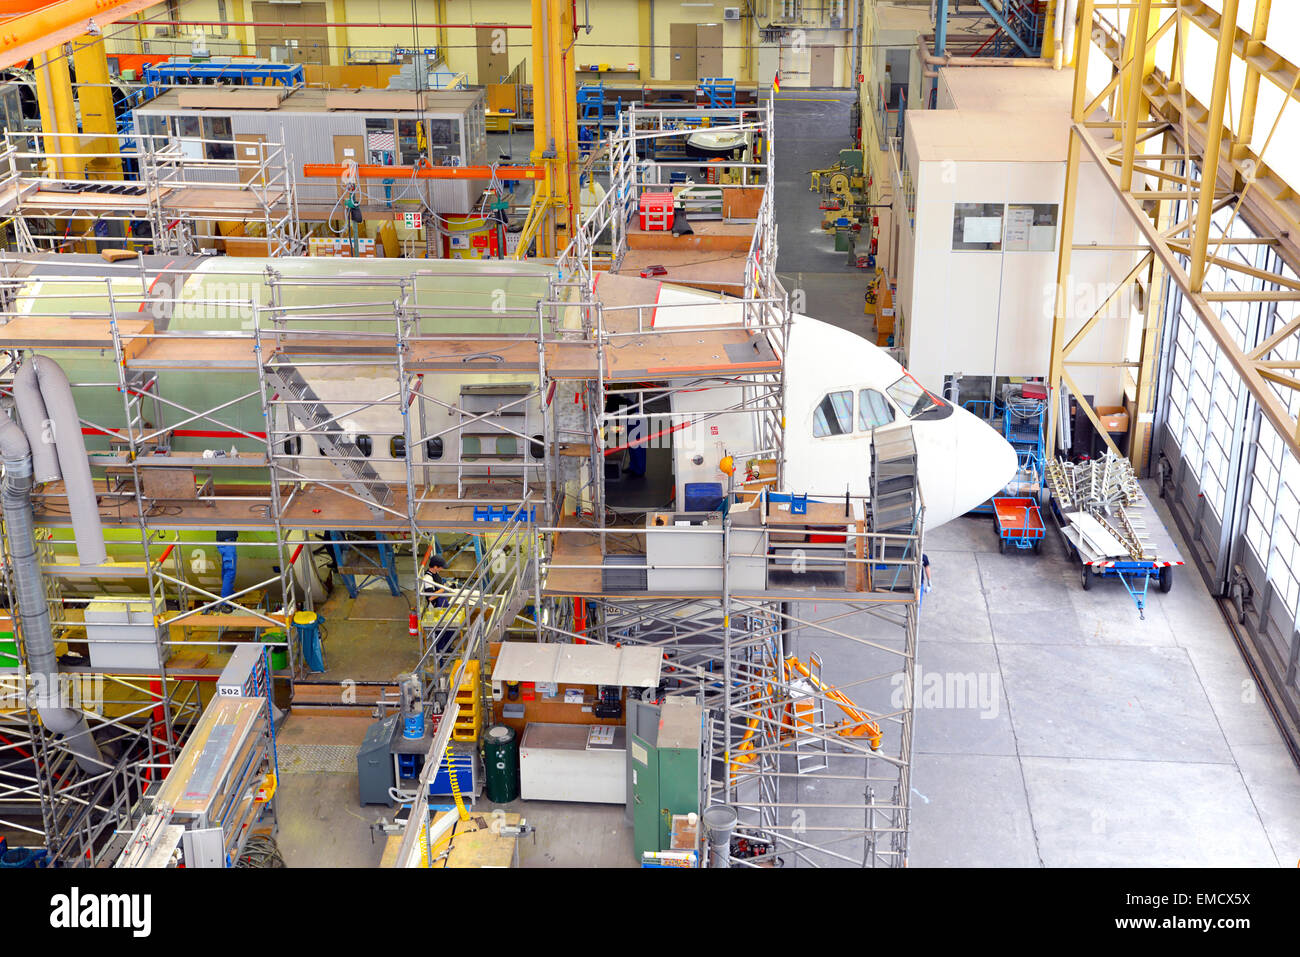 Airplane construction in a hangar Stock Photo